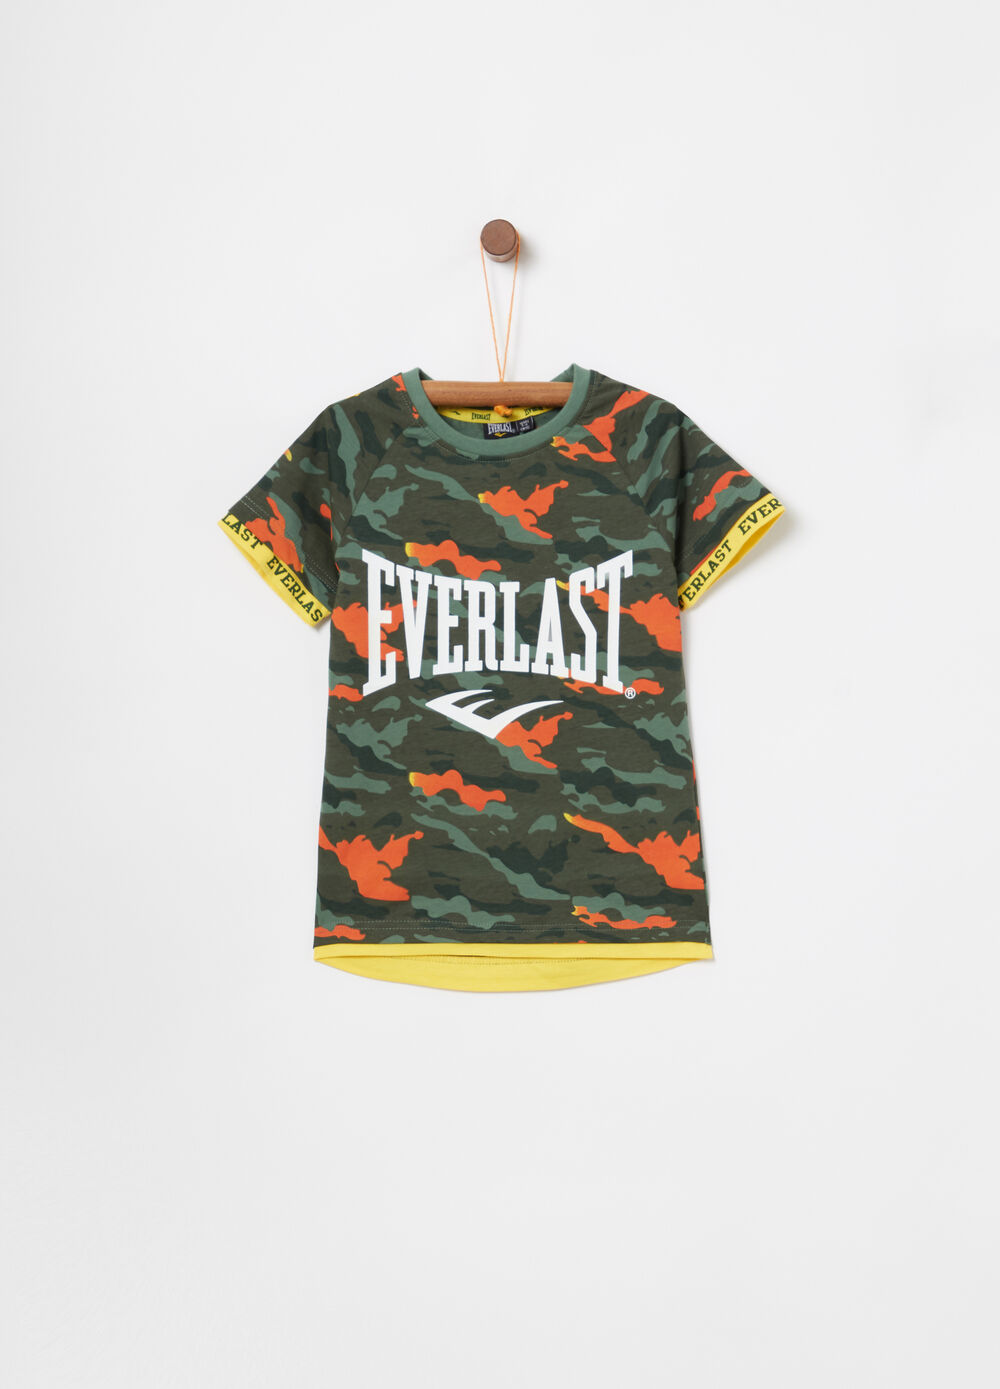 Lightweight cotton T-shirt with camouflage print